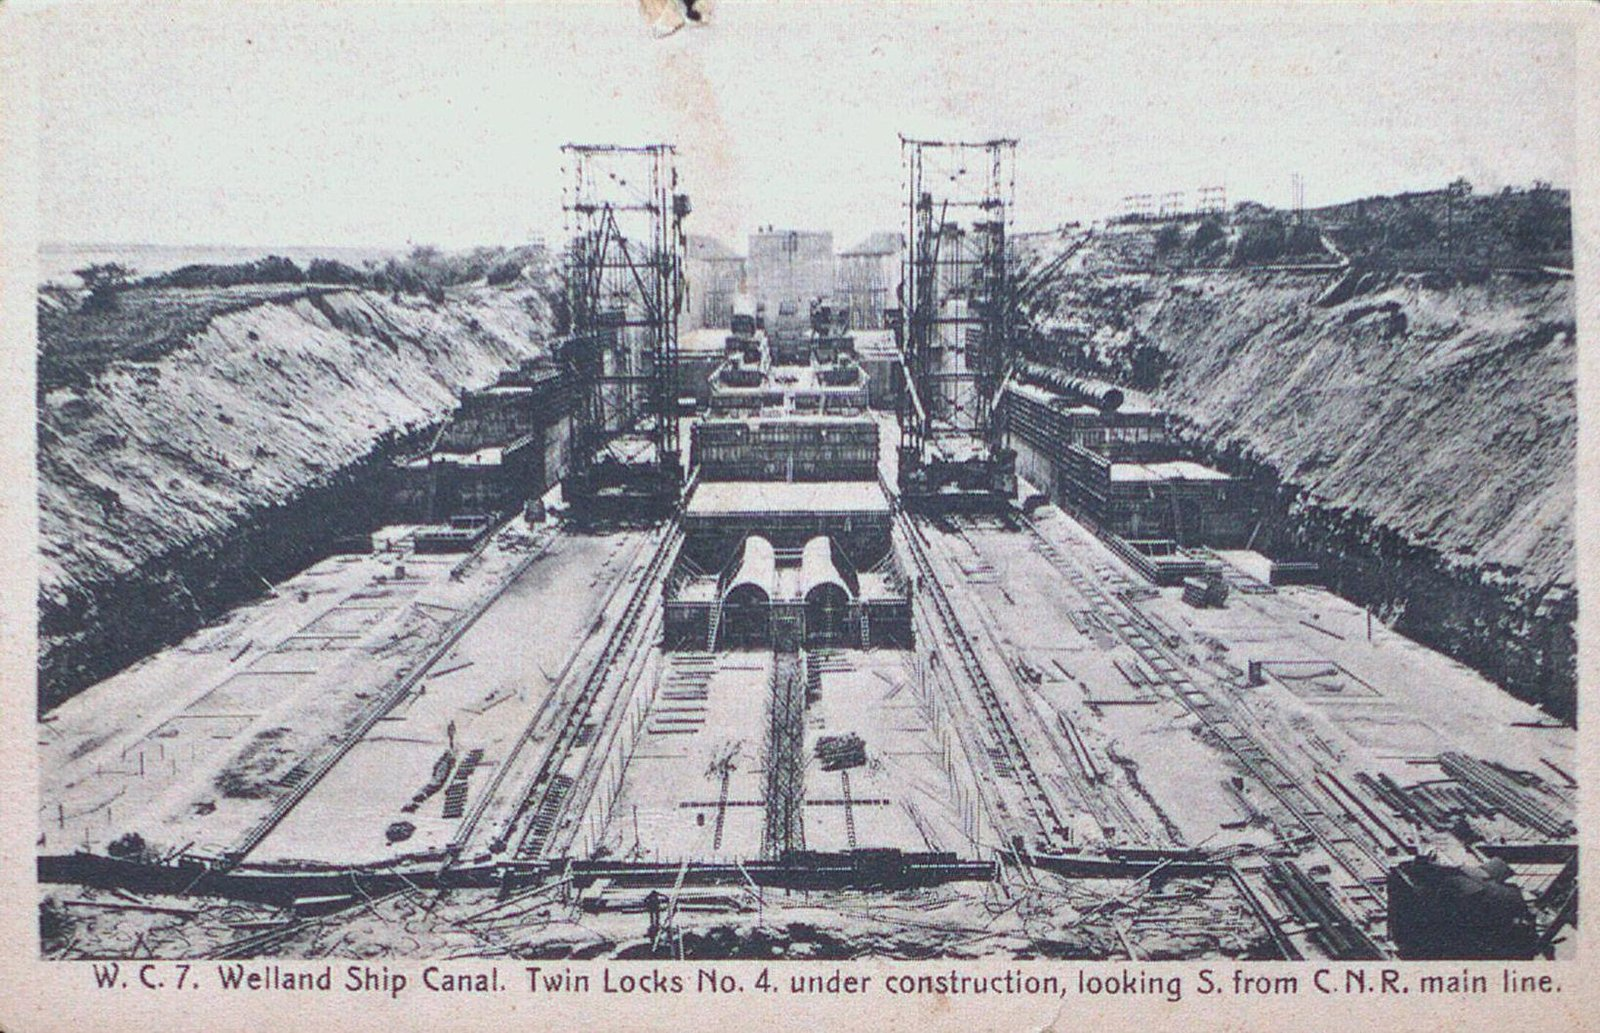 Twin Locks Under Construction on the Fourth Welland Canal